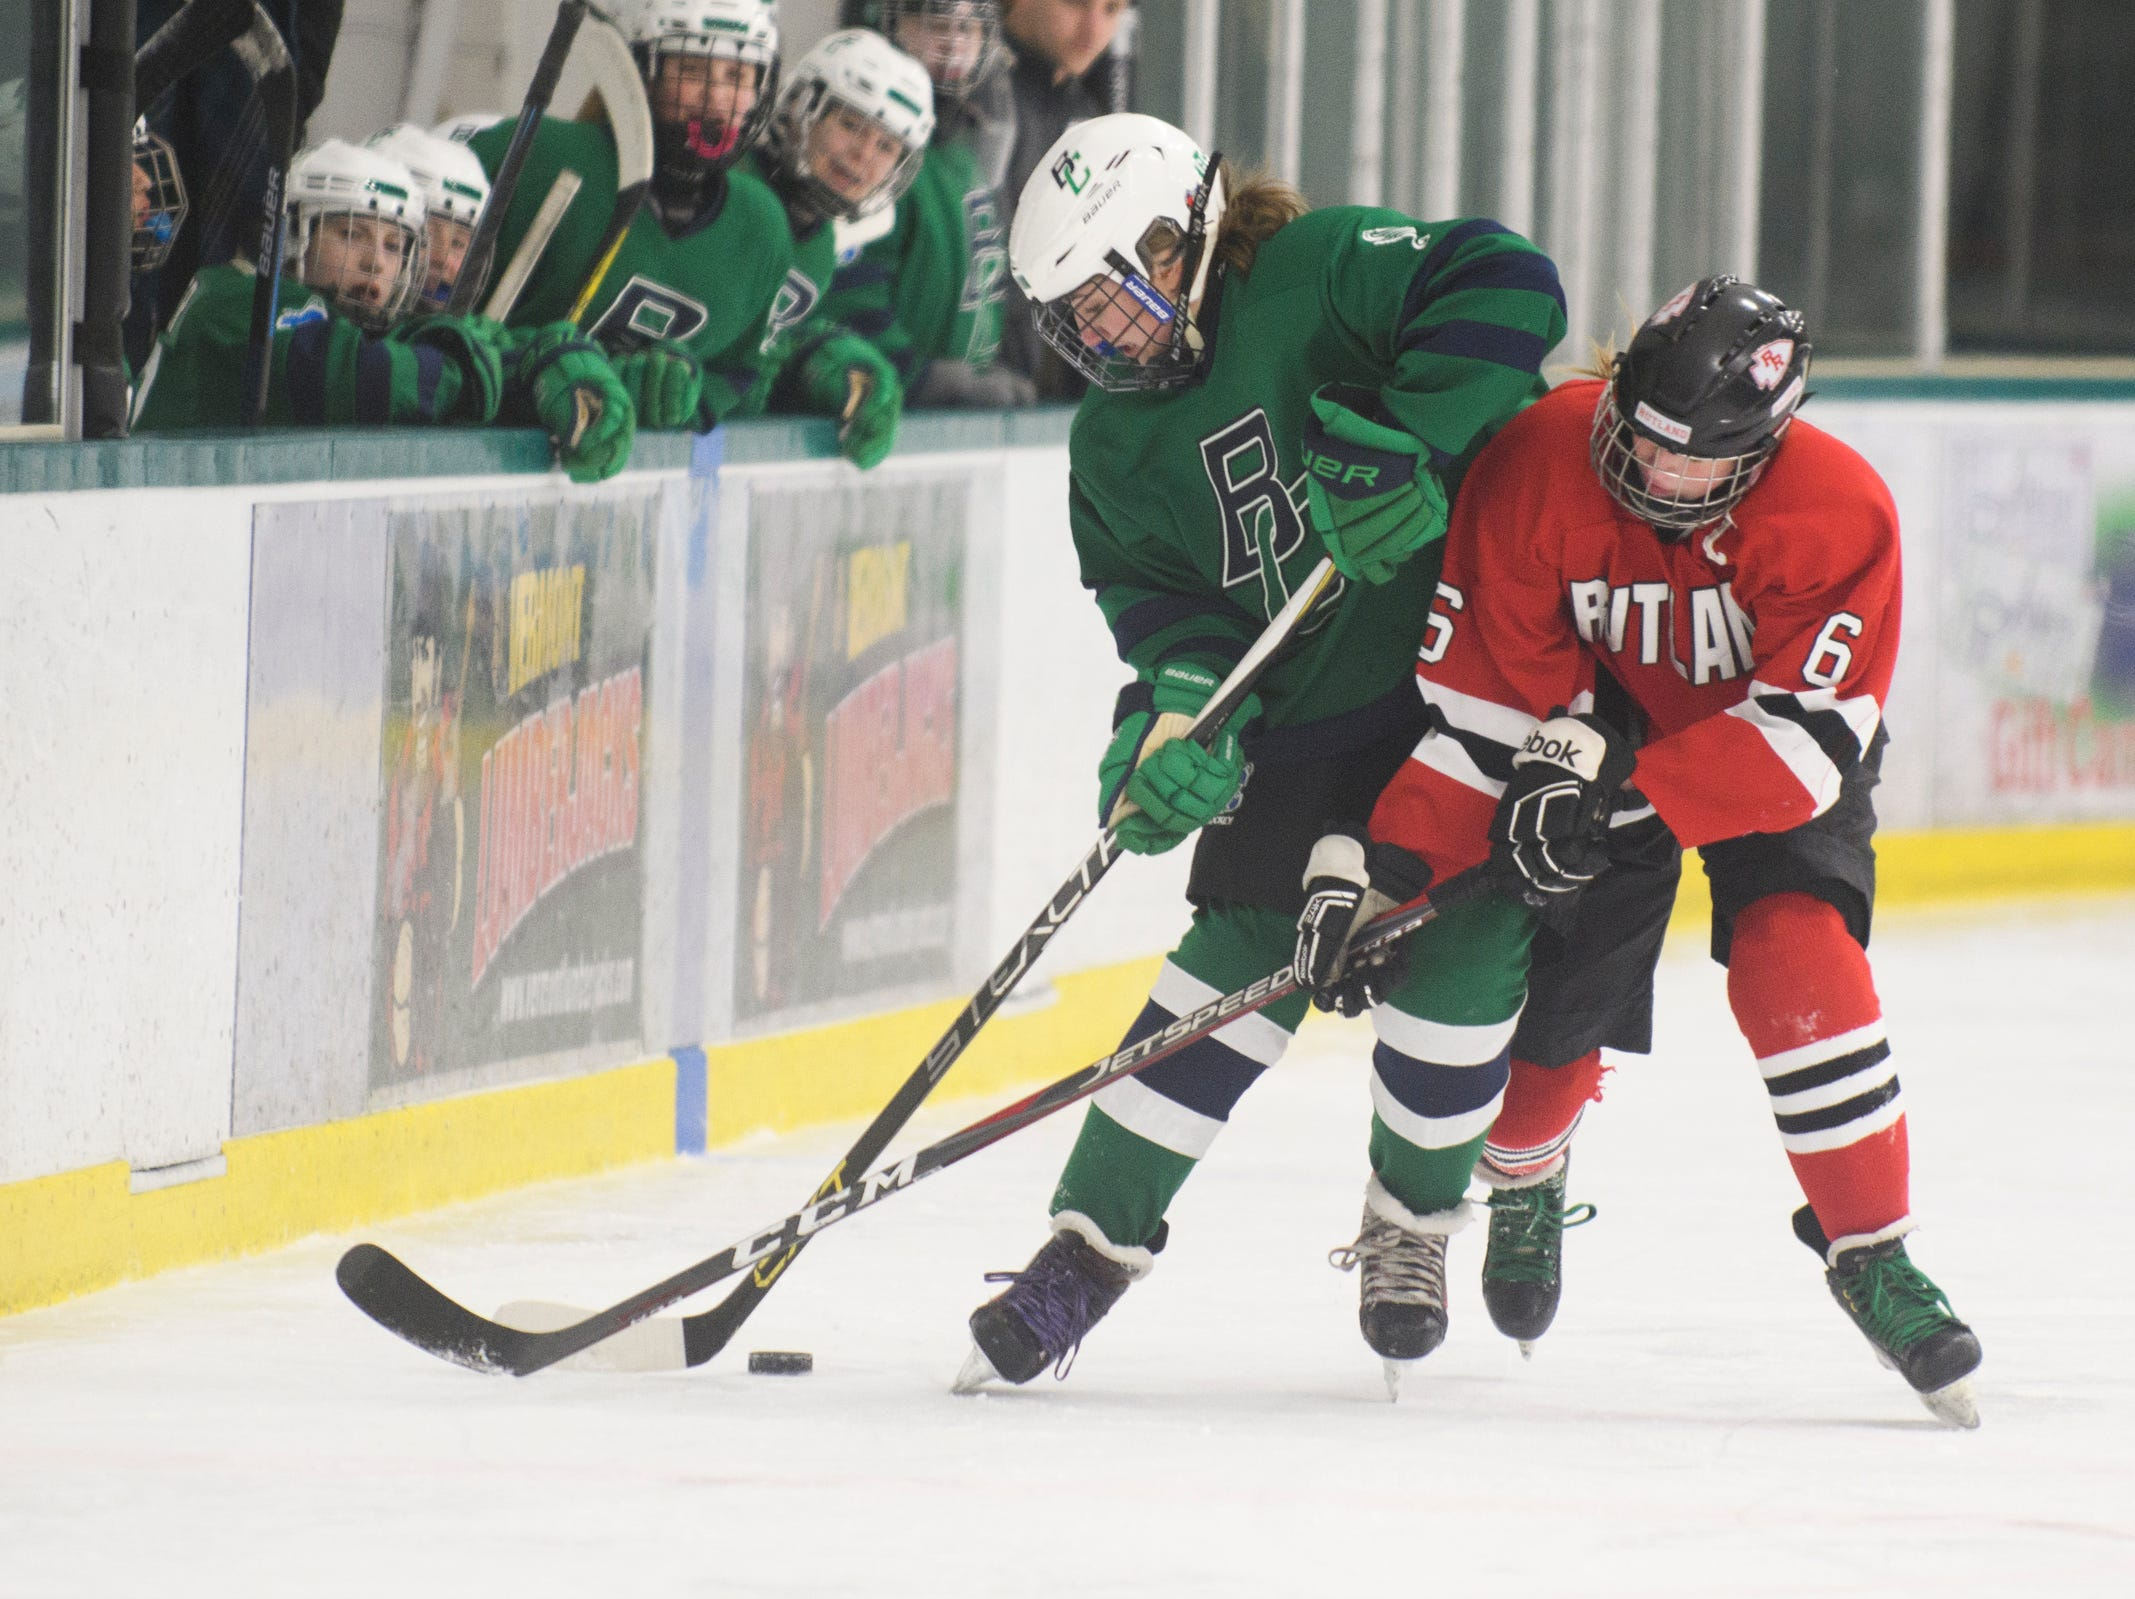 Rutland's Brianna Beauchamp (6) battles for the puck with Burlington/Colchester's McKenna Weston (13) during the girls hockey game between the Rutland Raiders and the Burlington/Colchester Sea Lakers at the Gordon Paquette Arena at Leddy Park on Tuesday afternoon March 5, 2019 in Burlington, Vermont.